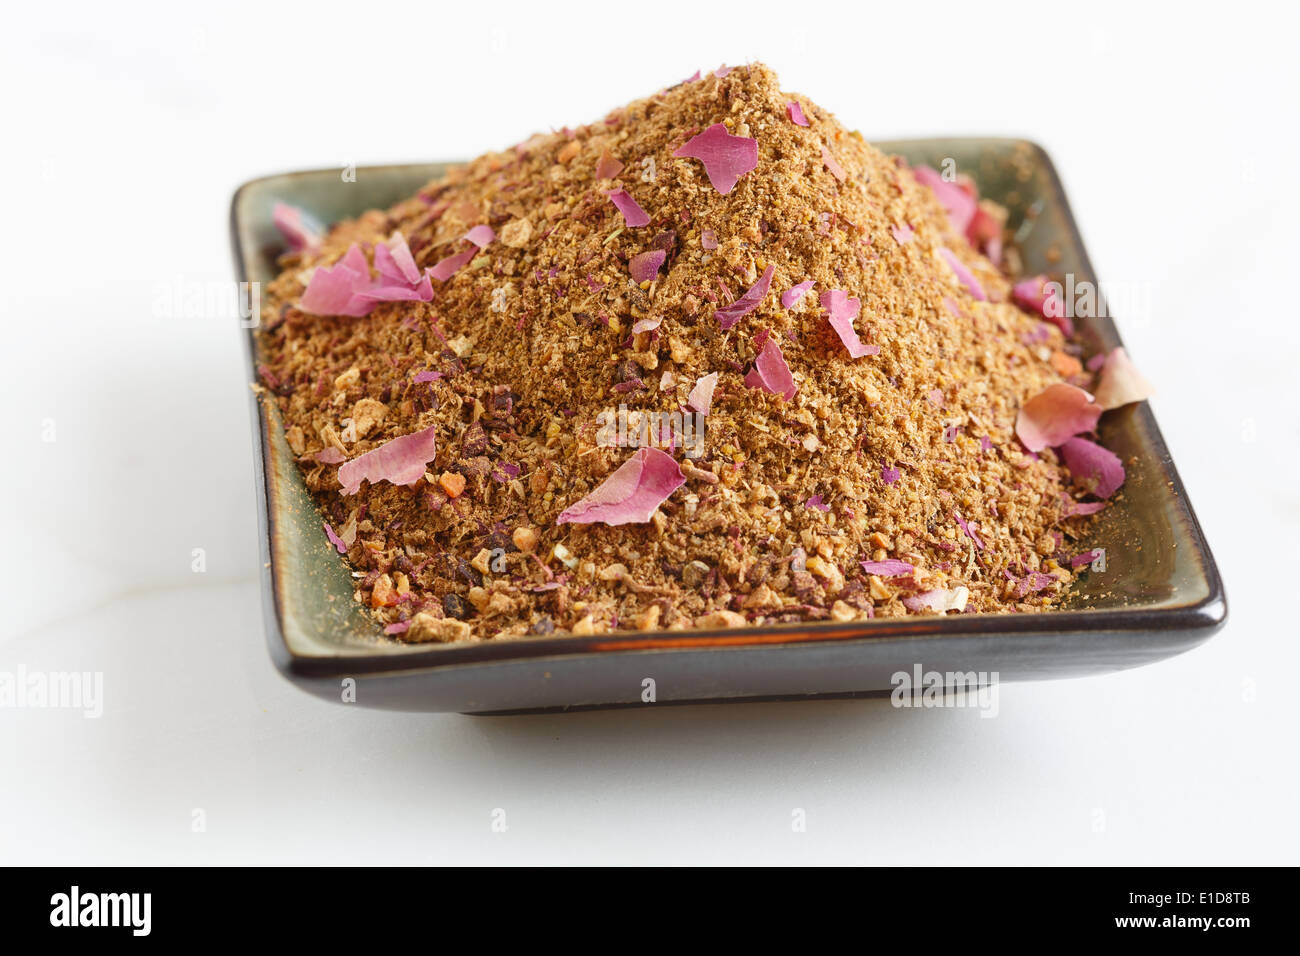 Spice mix for rice in a bowl - Stock Image